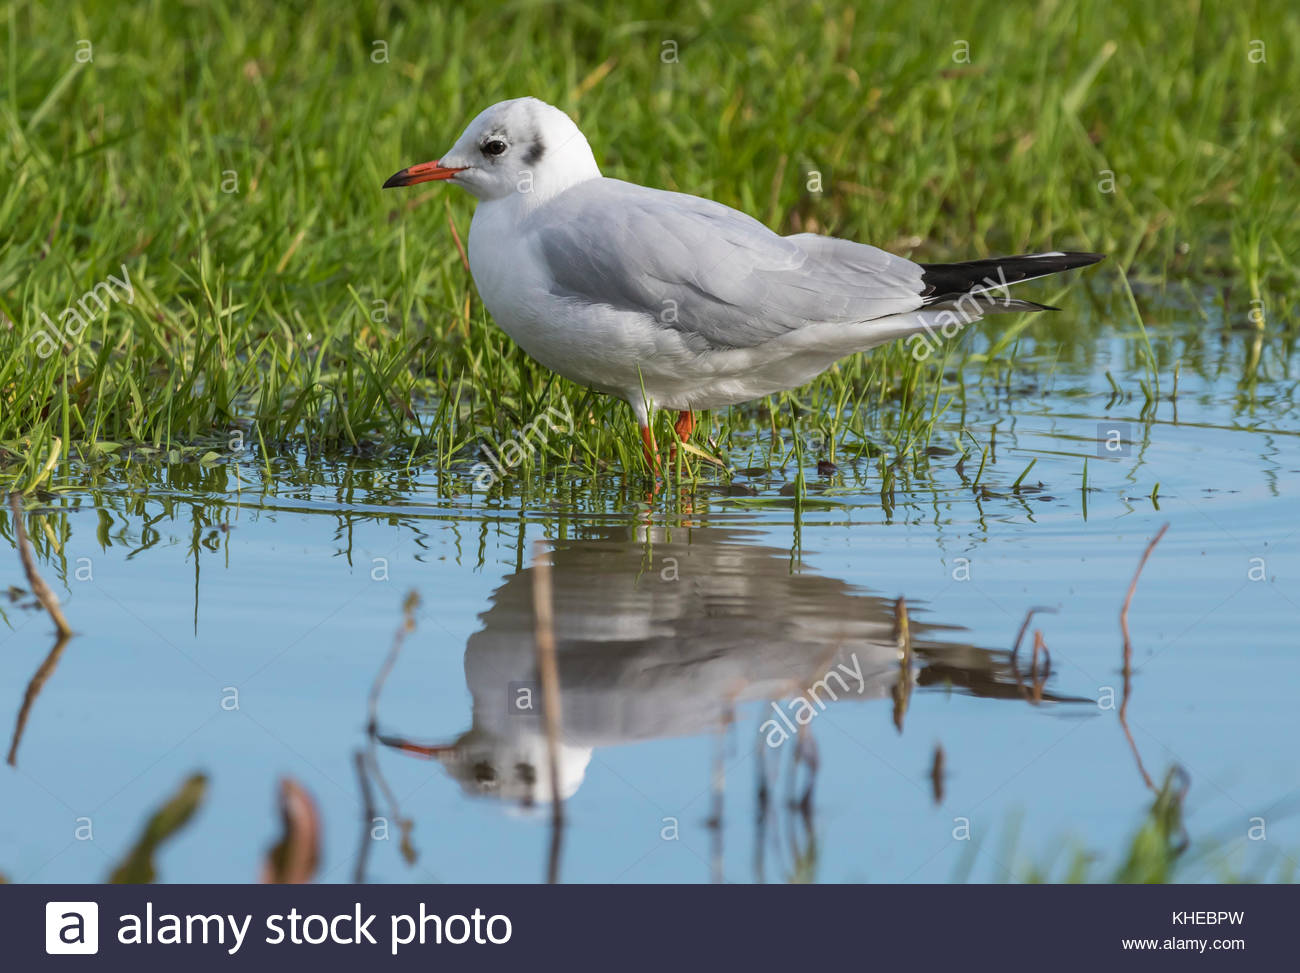 Black Headed Gull (Chroicocephalus ridibundus) with a reflection in water standing in a field in Winter plumage - Stock Image